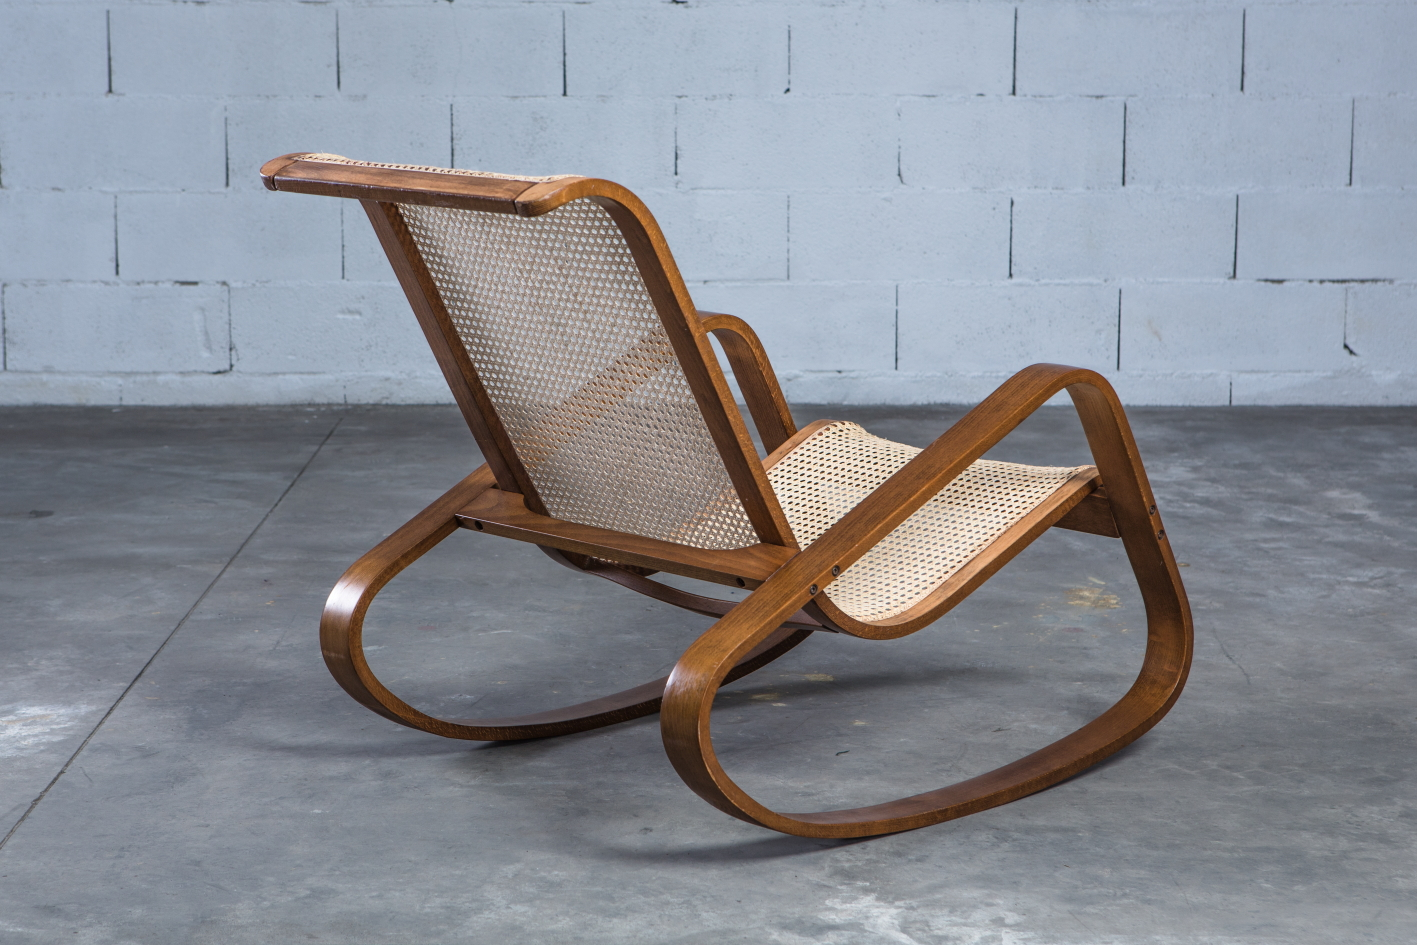 Dondolo rocking chair by Luigi Crassevig 1970s - 3/4 back view